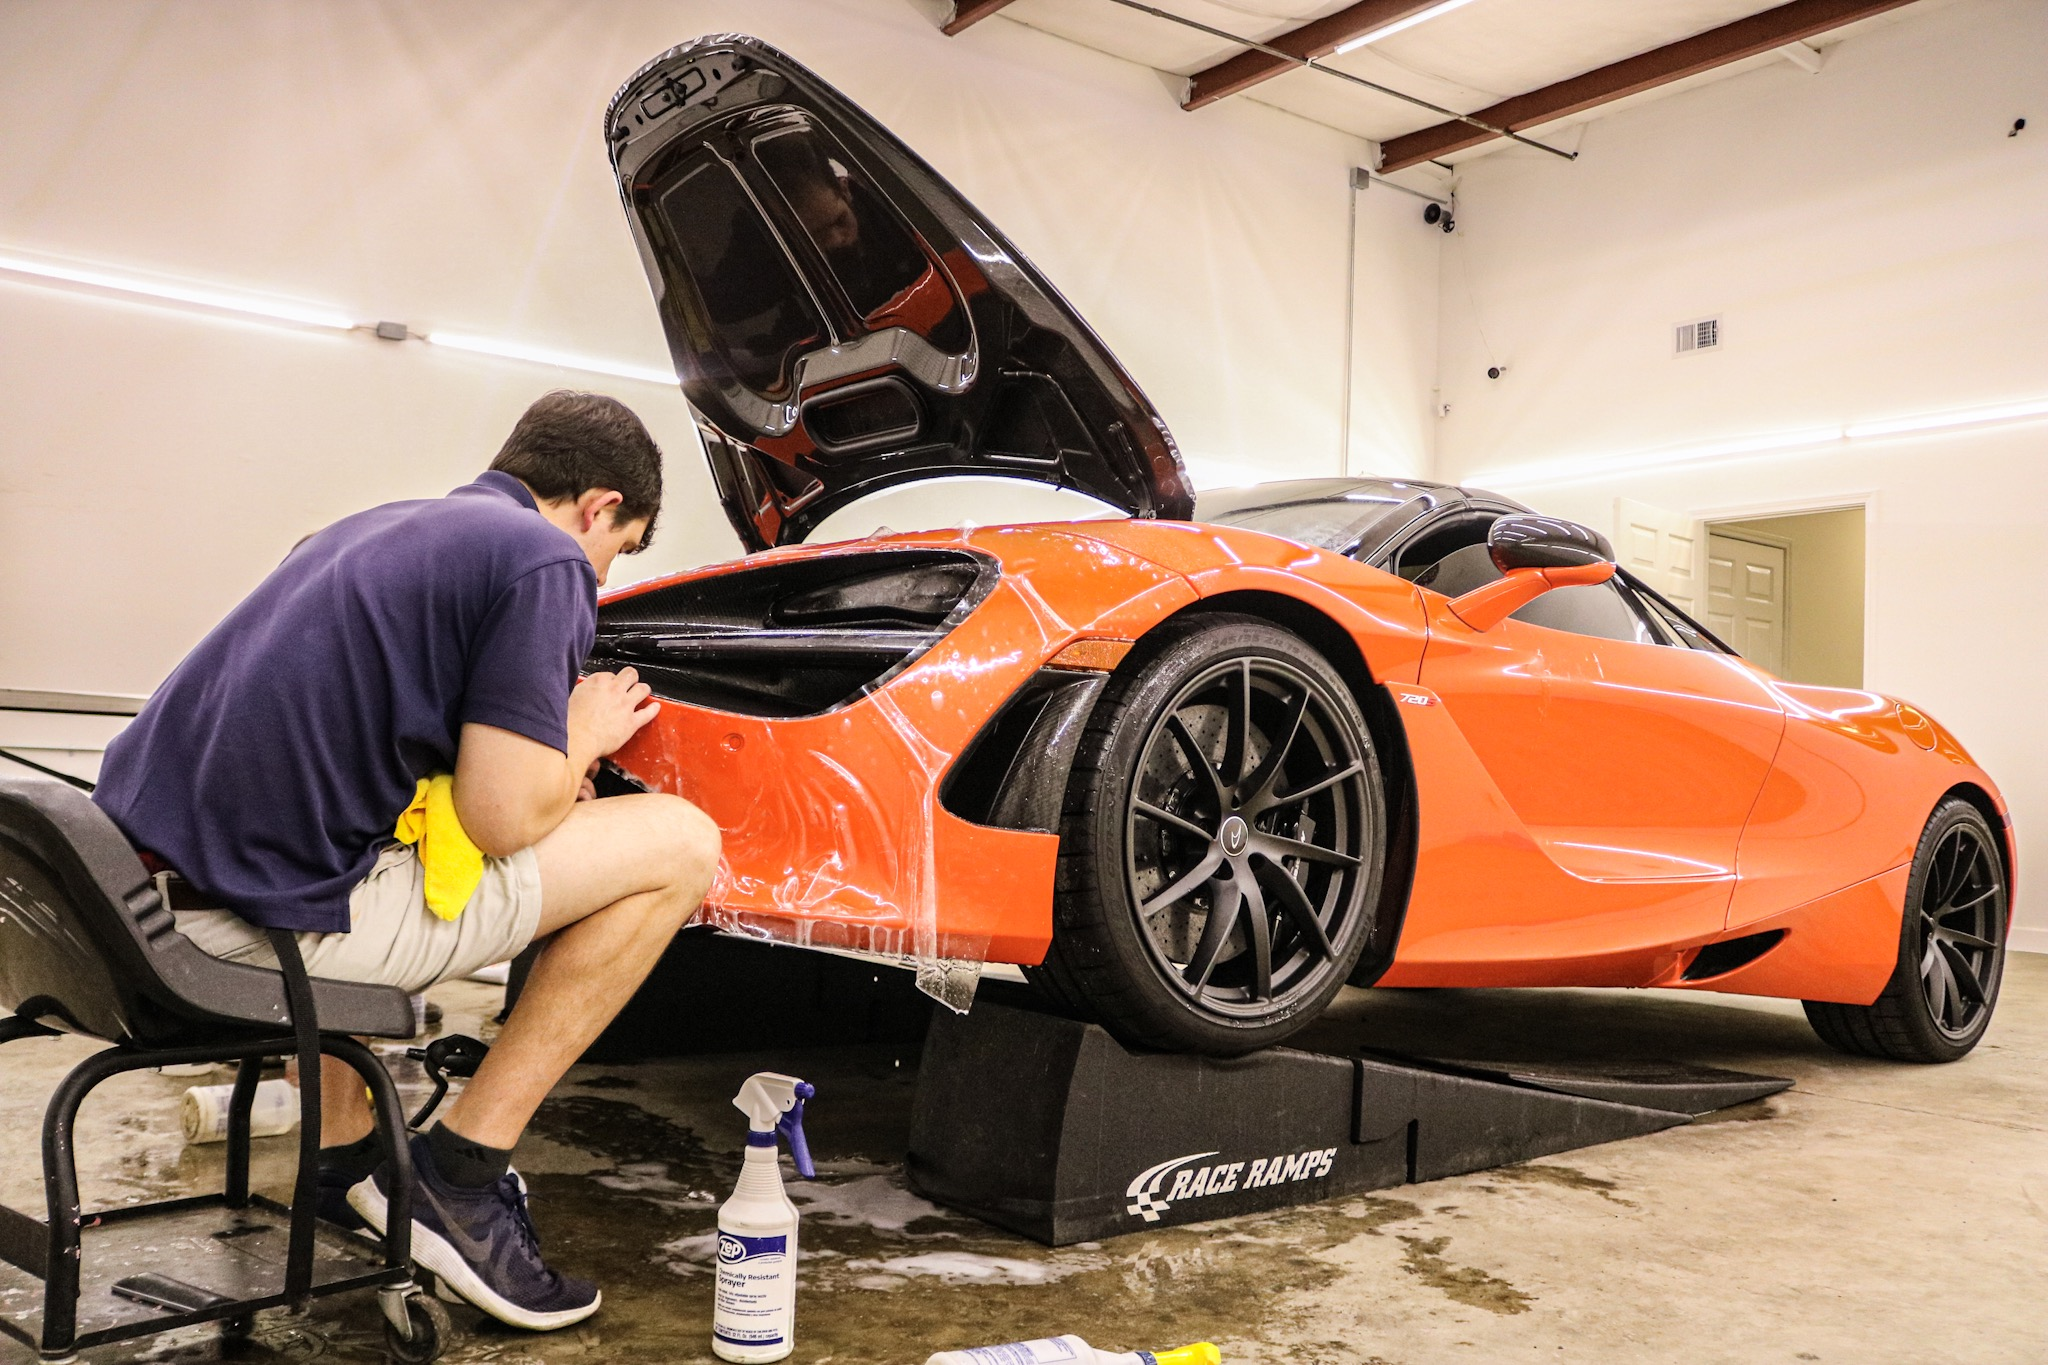 McLaren 720 Gets XPEL Clear Bra & Ceramic Pro Coating